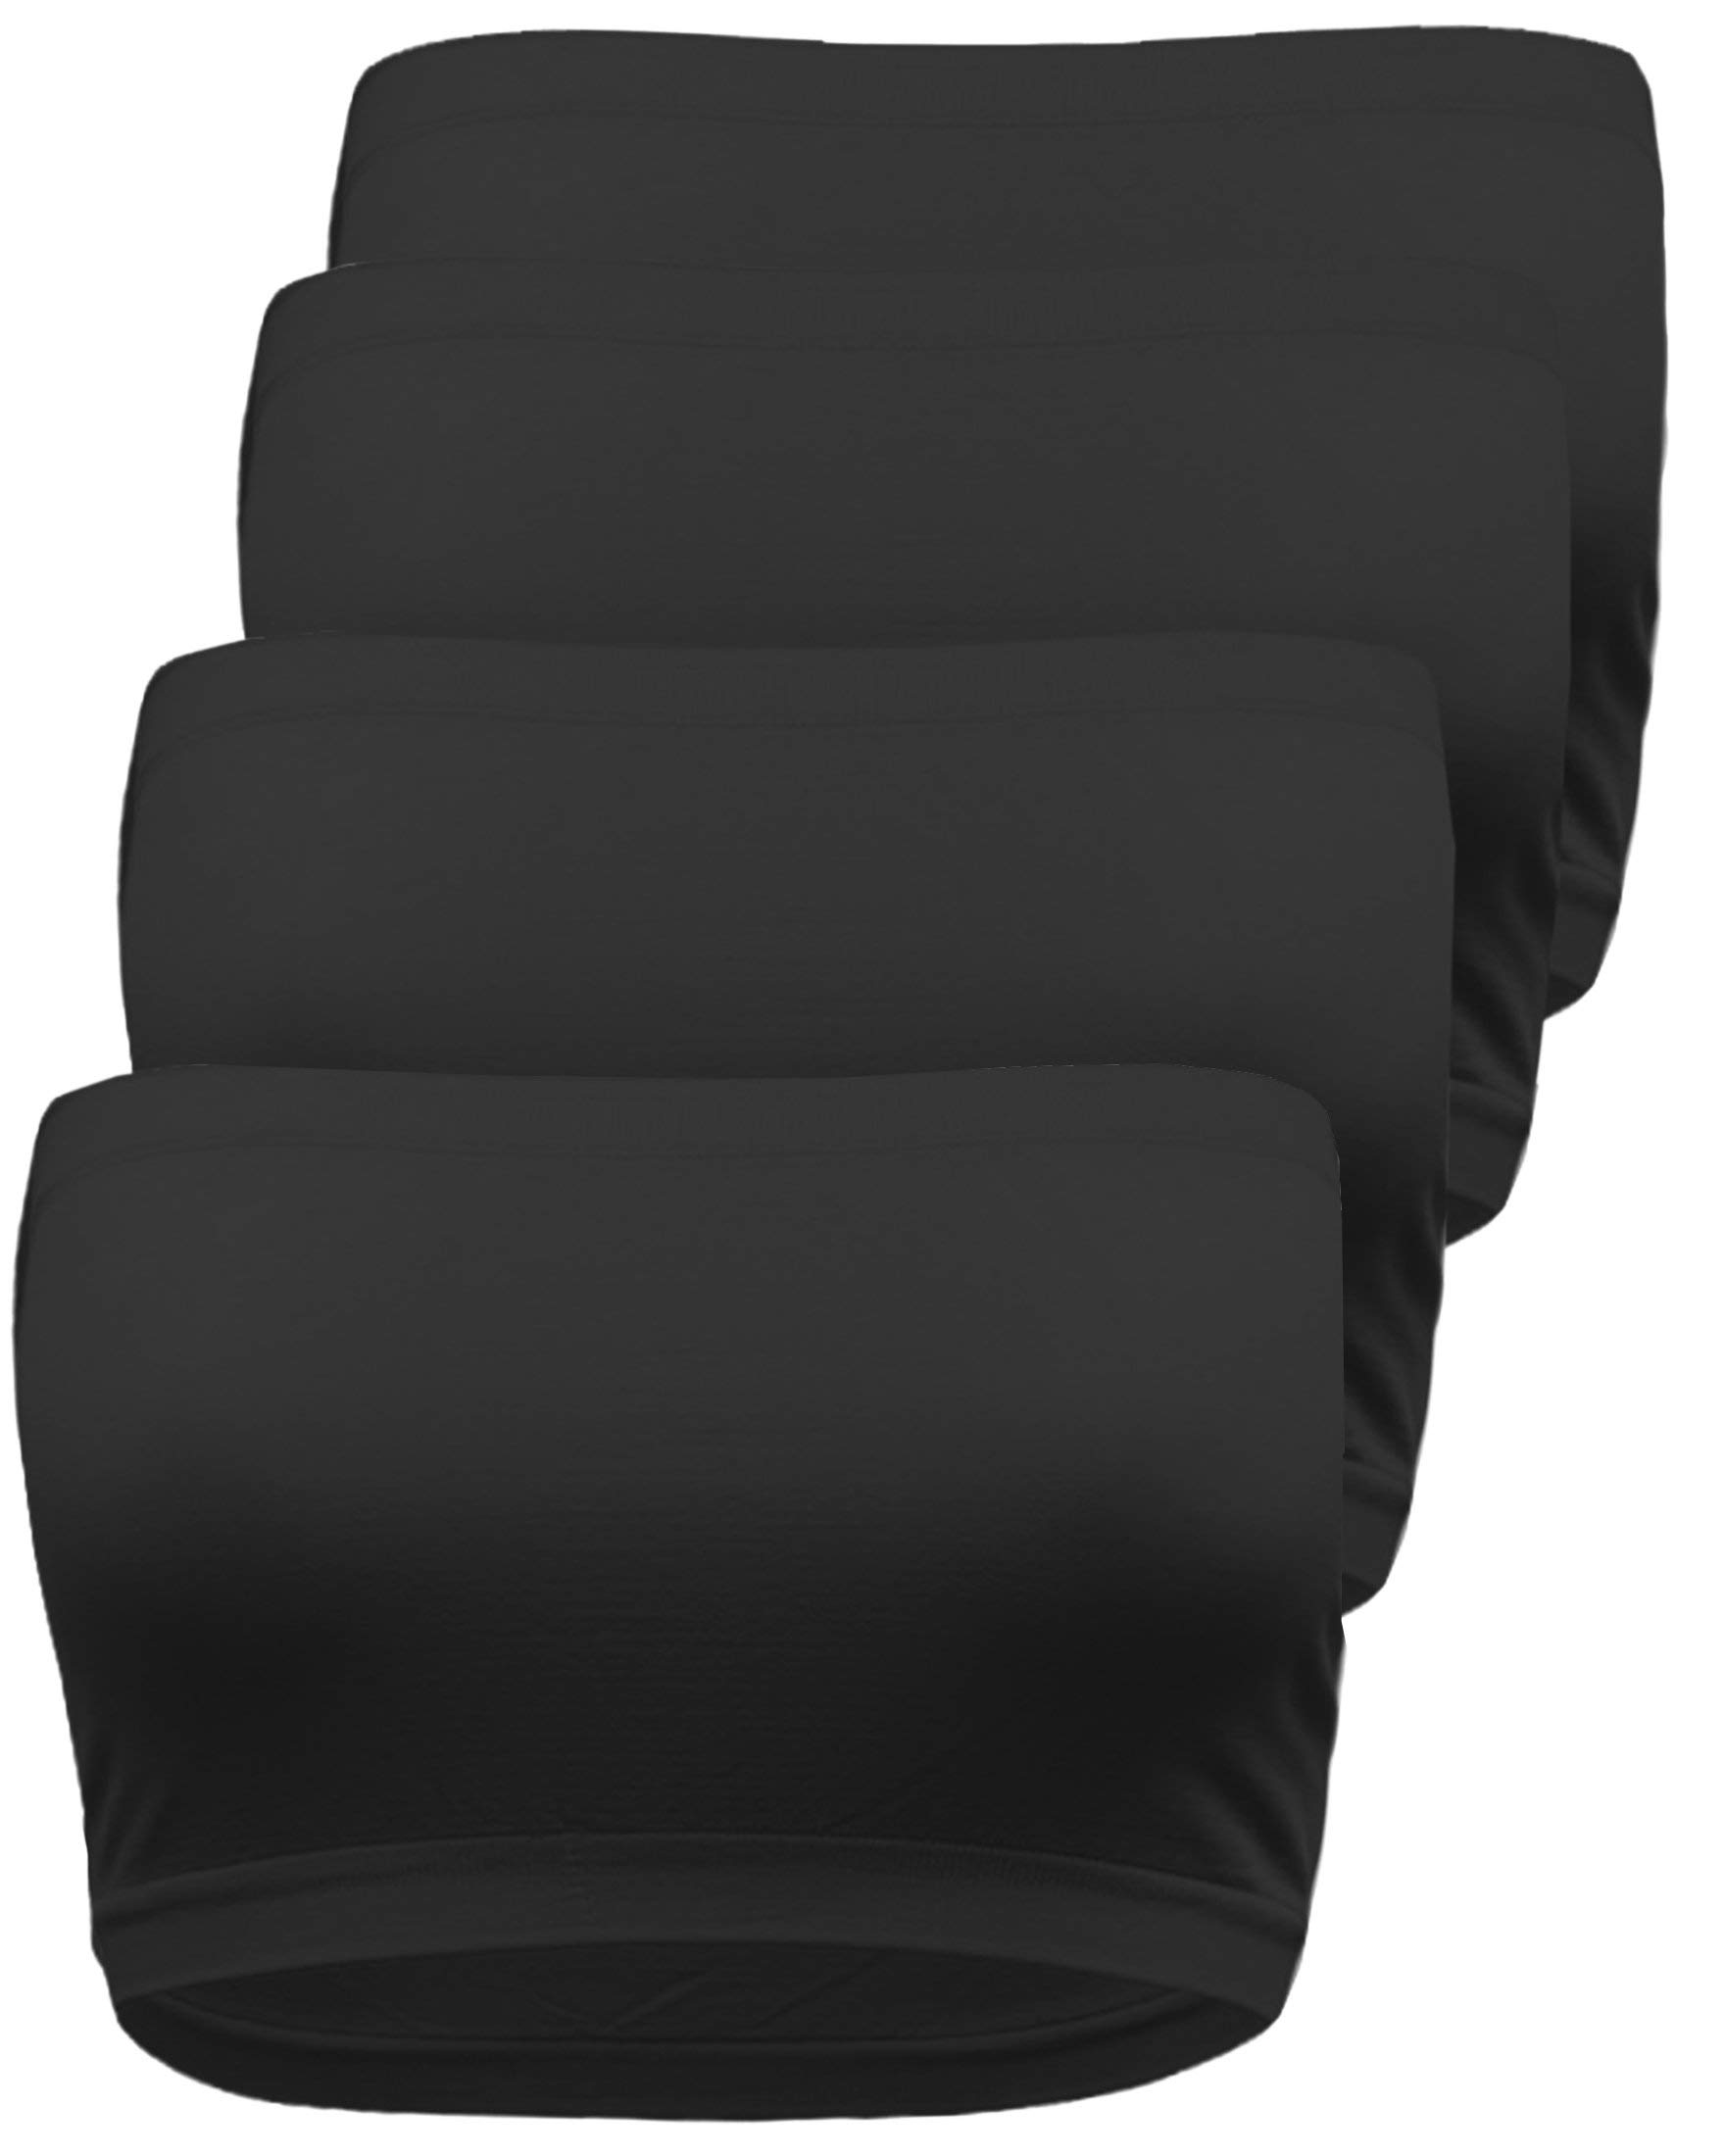 TL Women's Strapless Seamless Active Base Layer Bandeau Tube Top -Single or Pack 4 Packs: Plus Size Black Black Black Black by TOP LEGGING